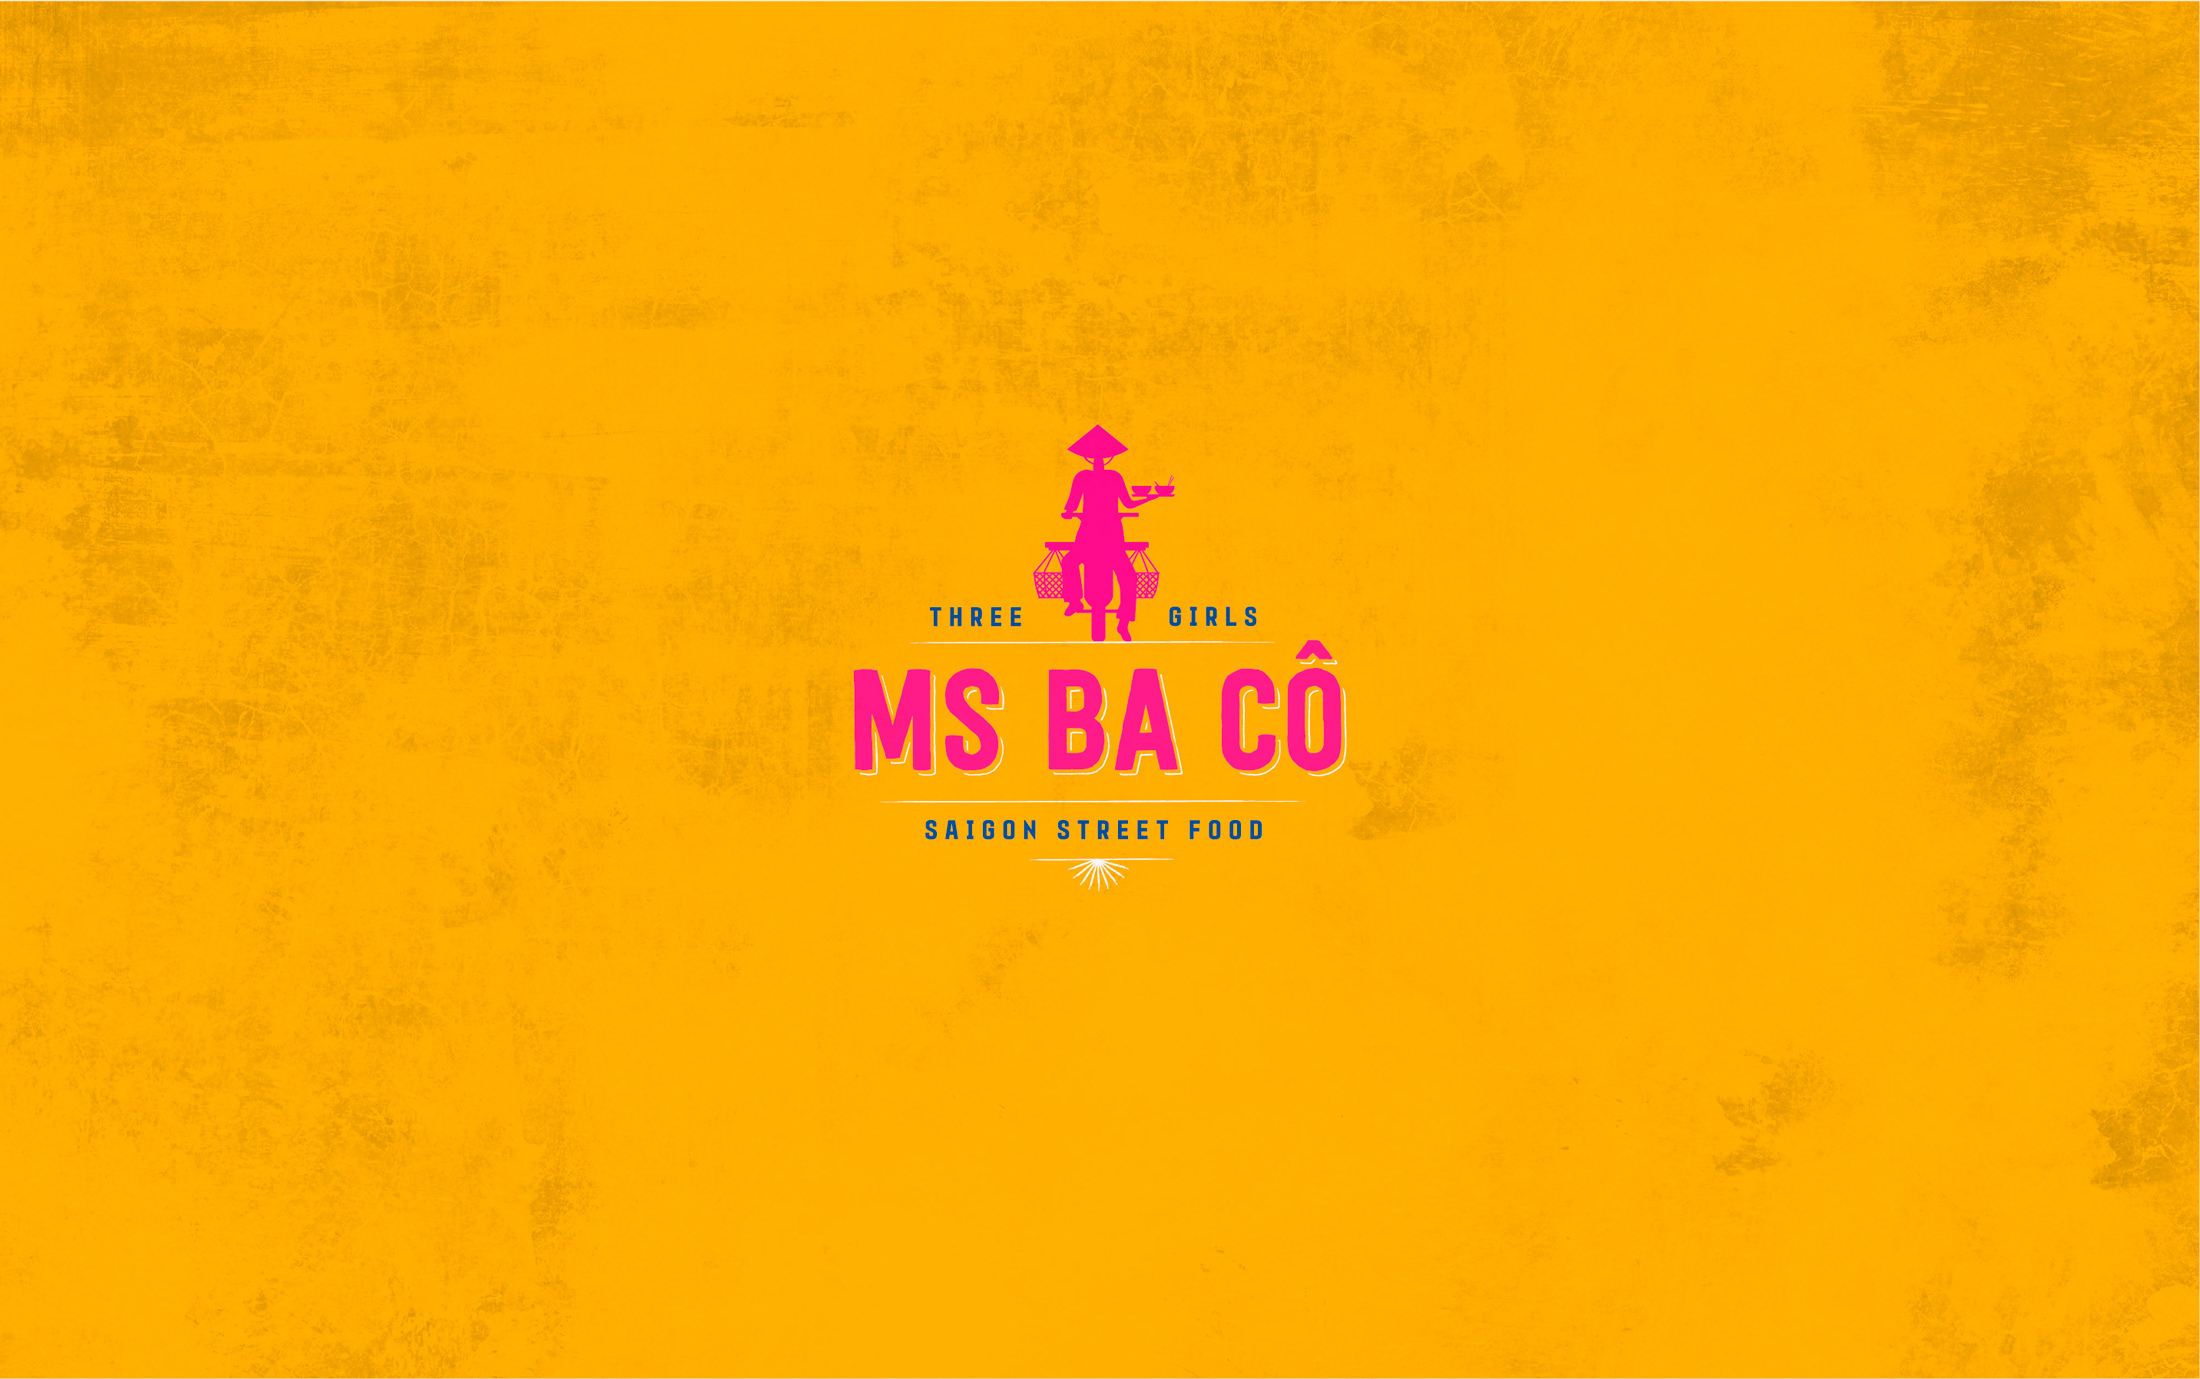 ms-ba-co-branding-design-1